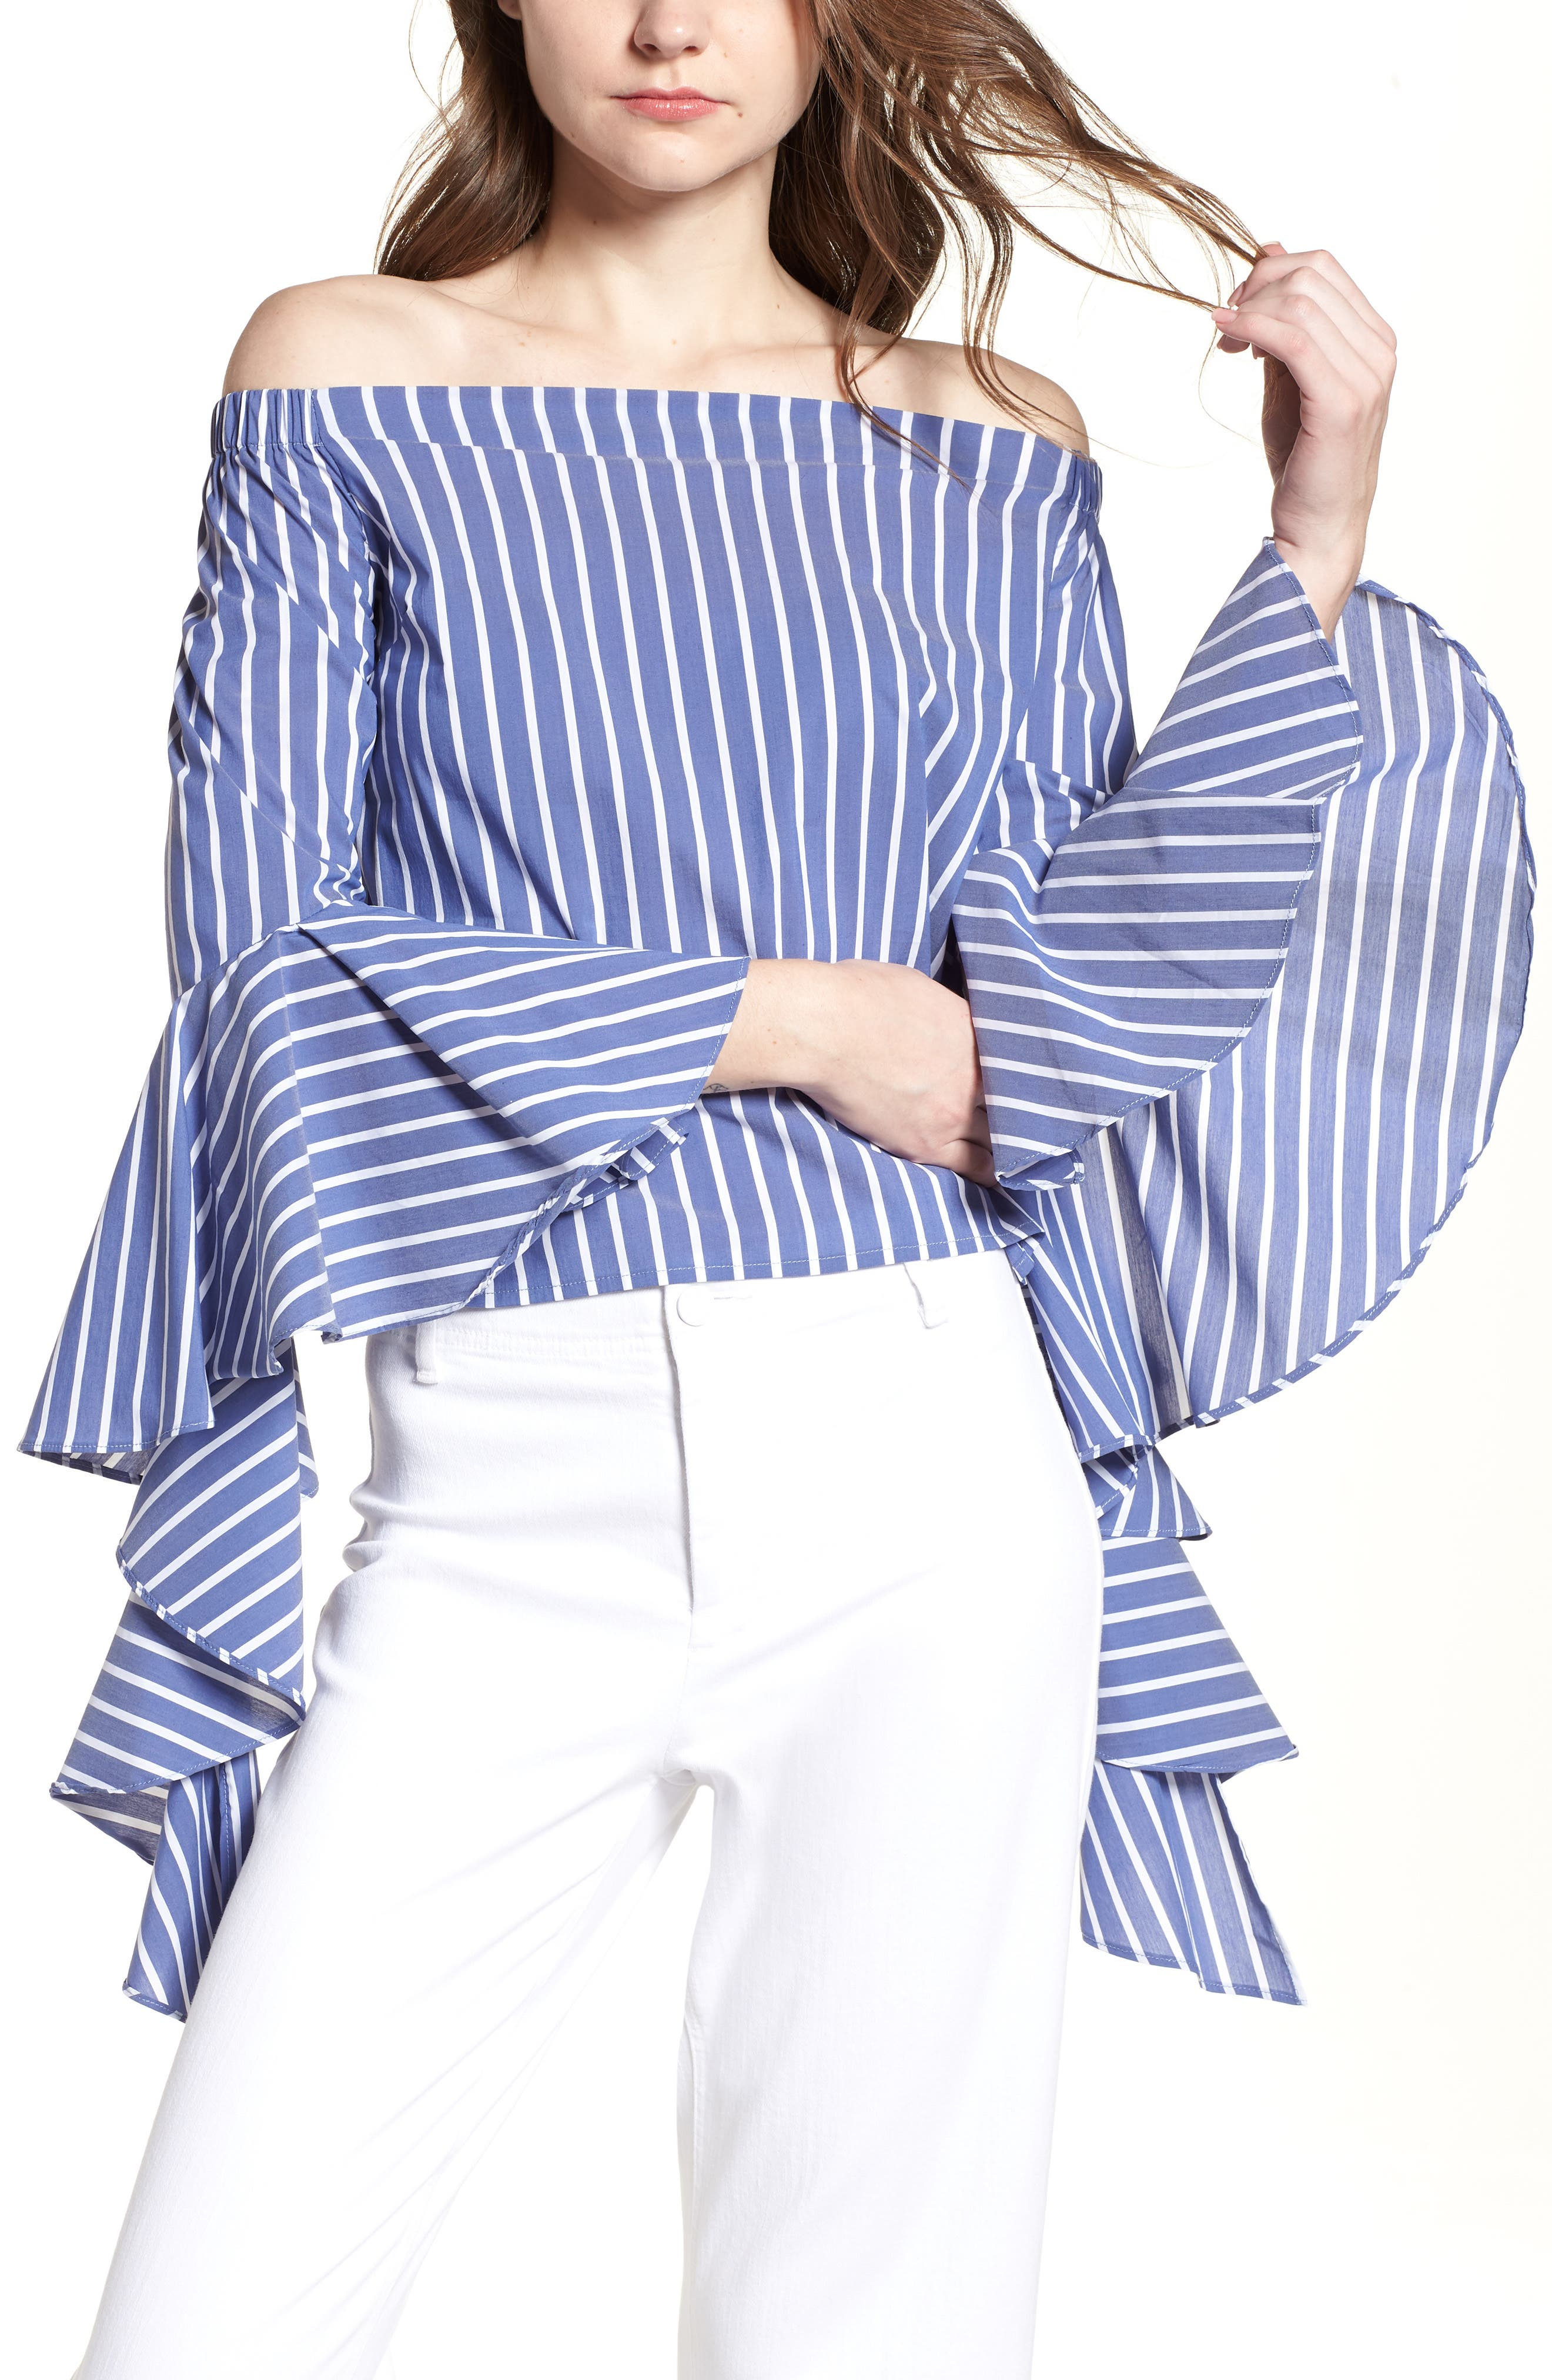 Bishop + Young Gigi Ruffle Sleeve Off the Shoulder Top,                         Main,                         color, Blue White Stripe